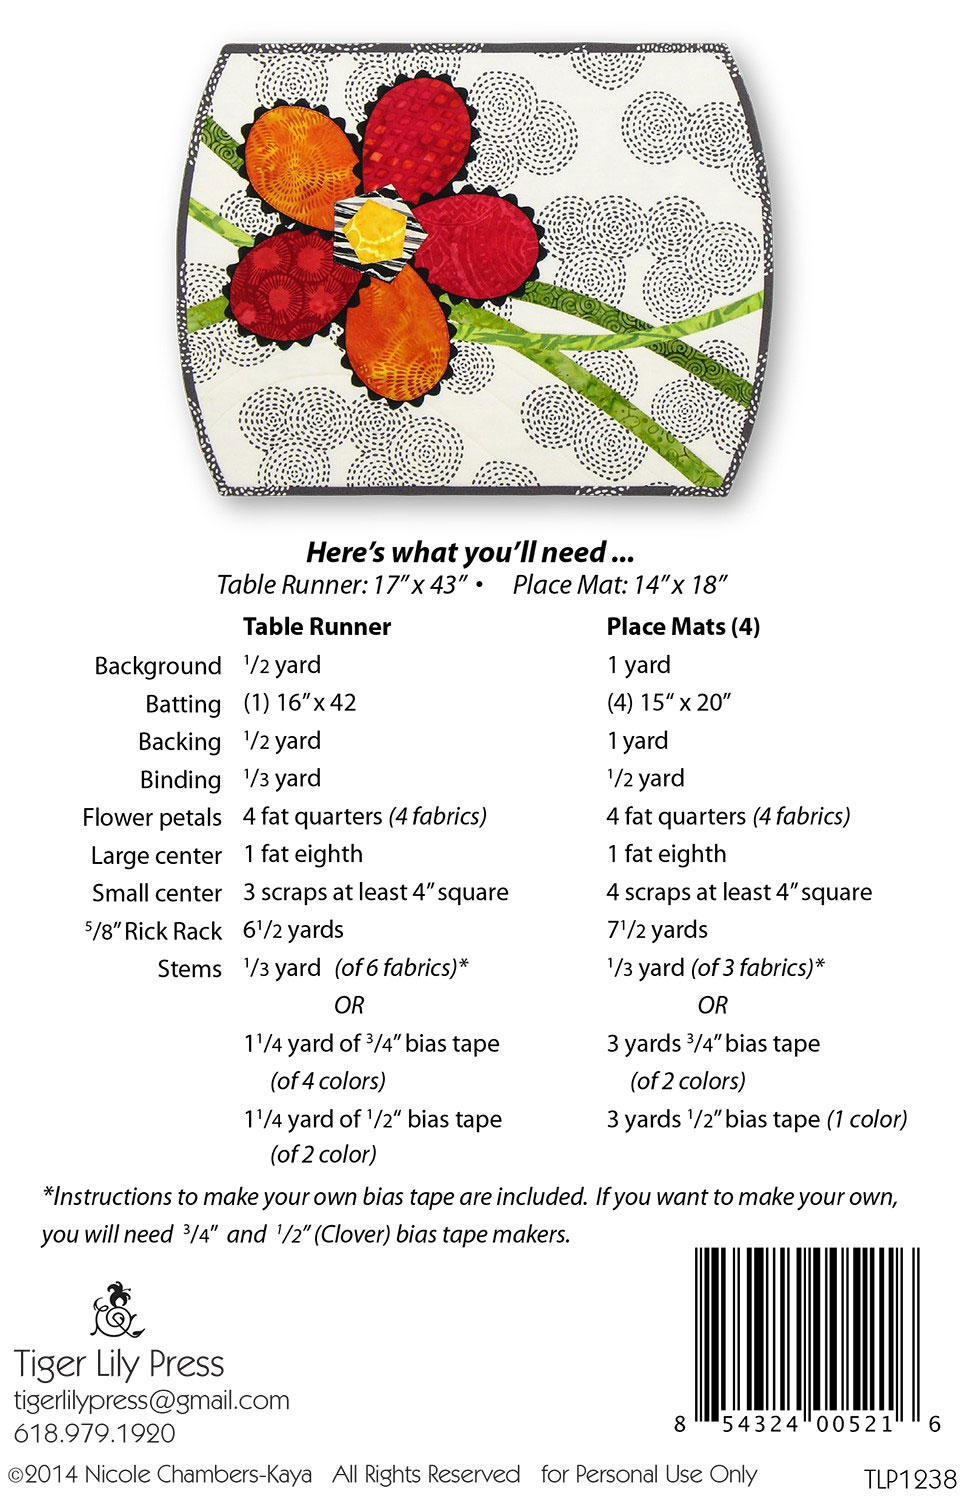 Pickle-Blooms-table-runner-and-placemats-sewing-pattern-Tiger-Lily-Press-back